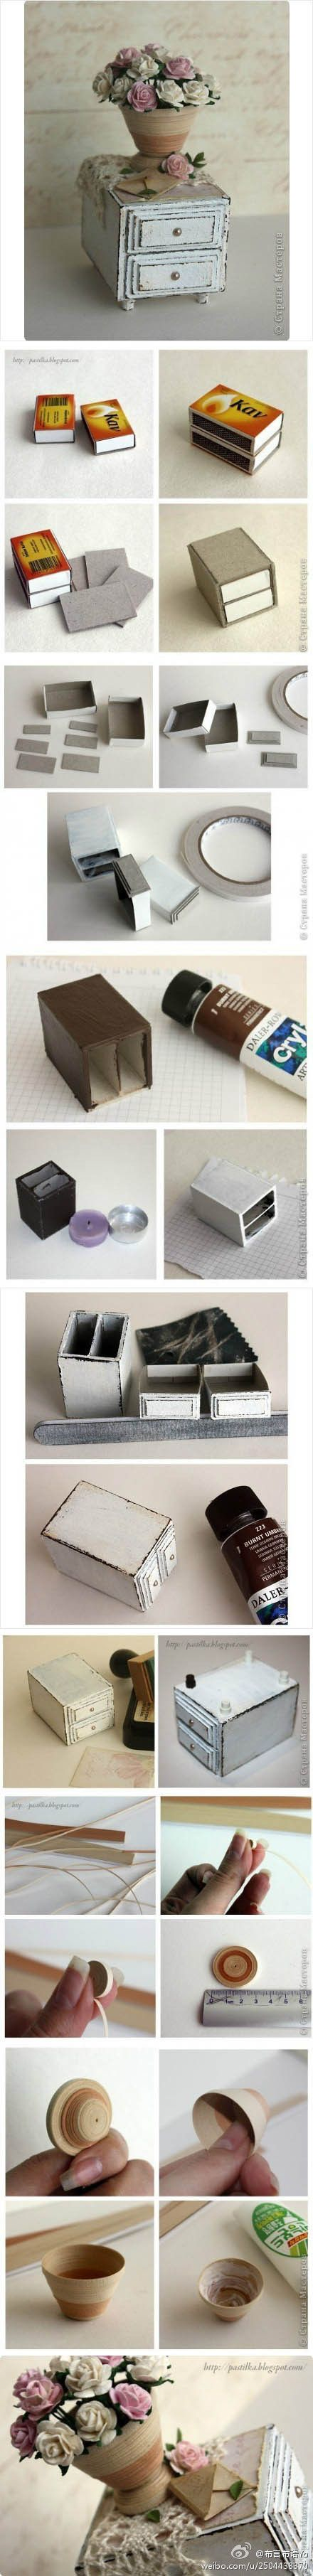 I've been meaning to make something like this forever, now I found a great tutorial for it!!!  make a cute mini commode out of matchboxes!!